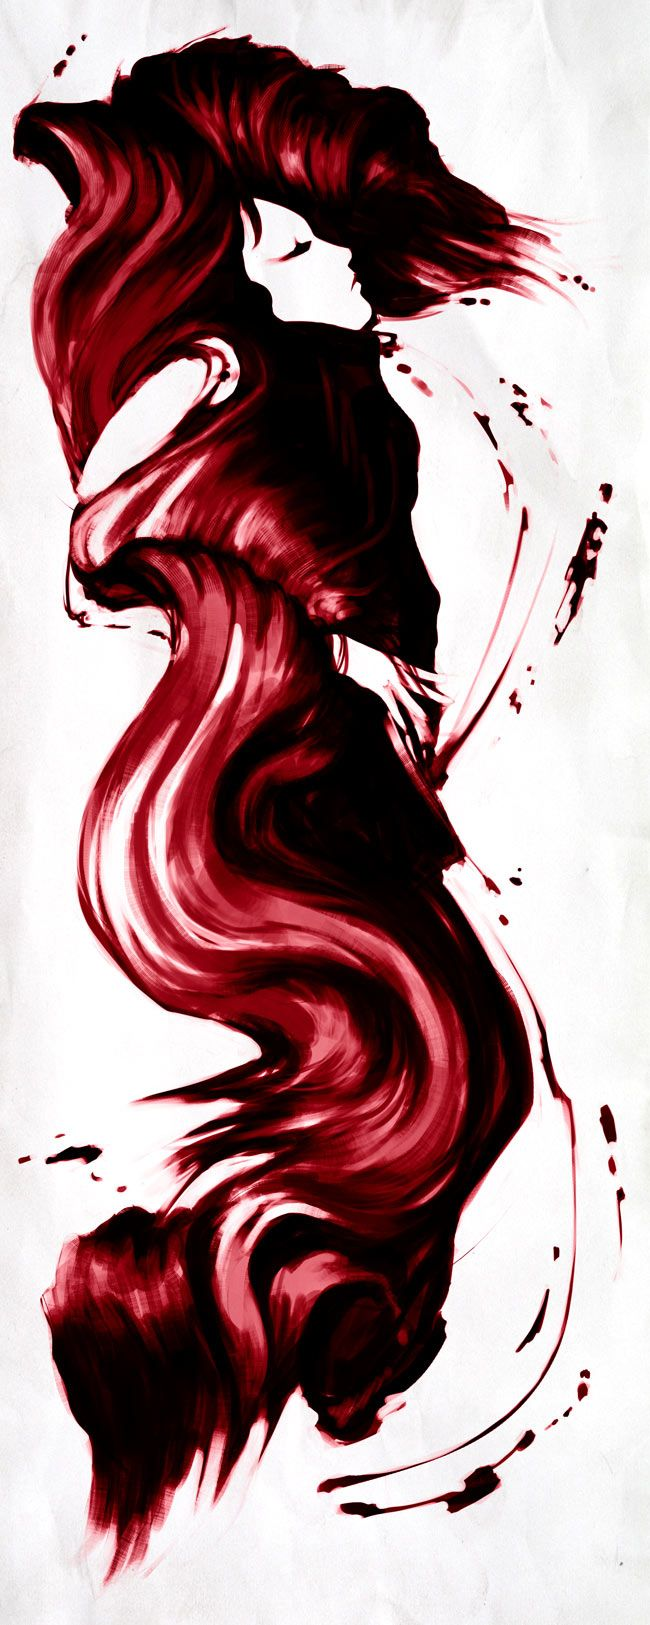 While Hanging Over The Table To Kiss My Best Friend In Tears I Dripped My Hair In Her Red Wine Beso De Vino Art Abstract Drawings